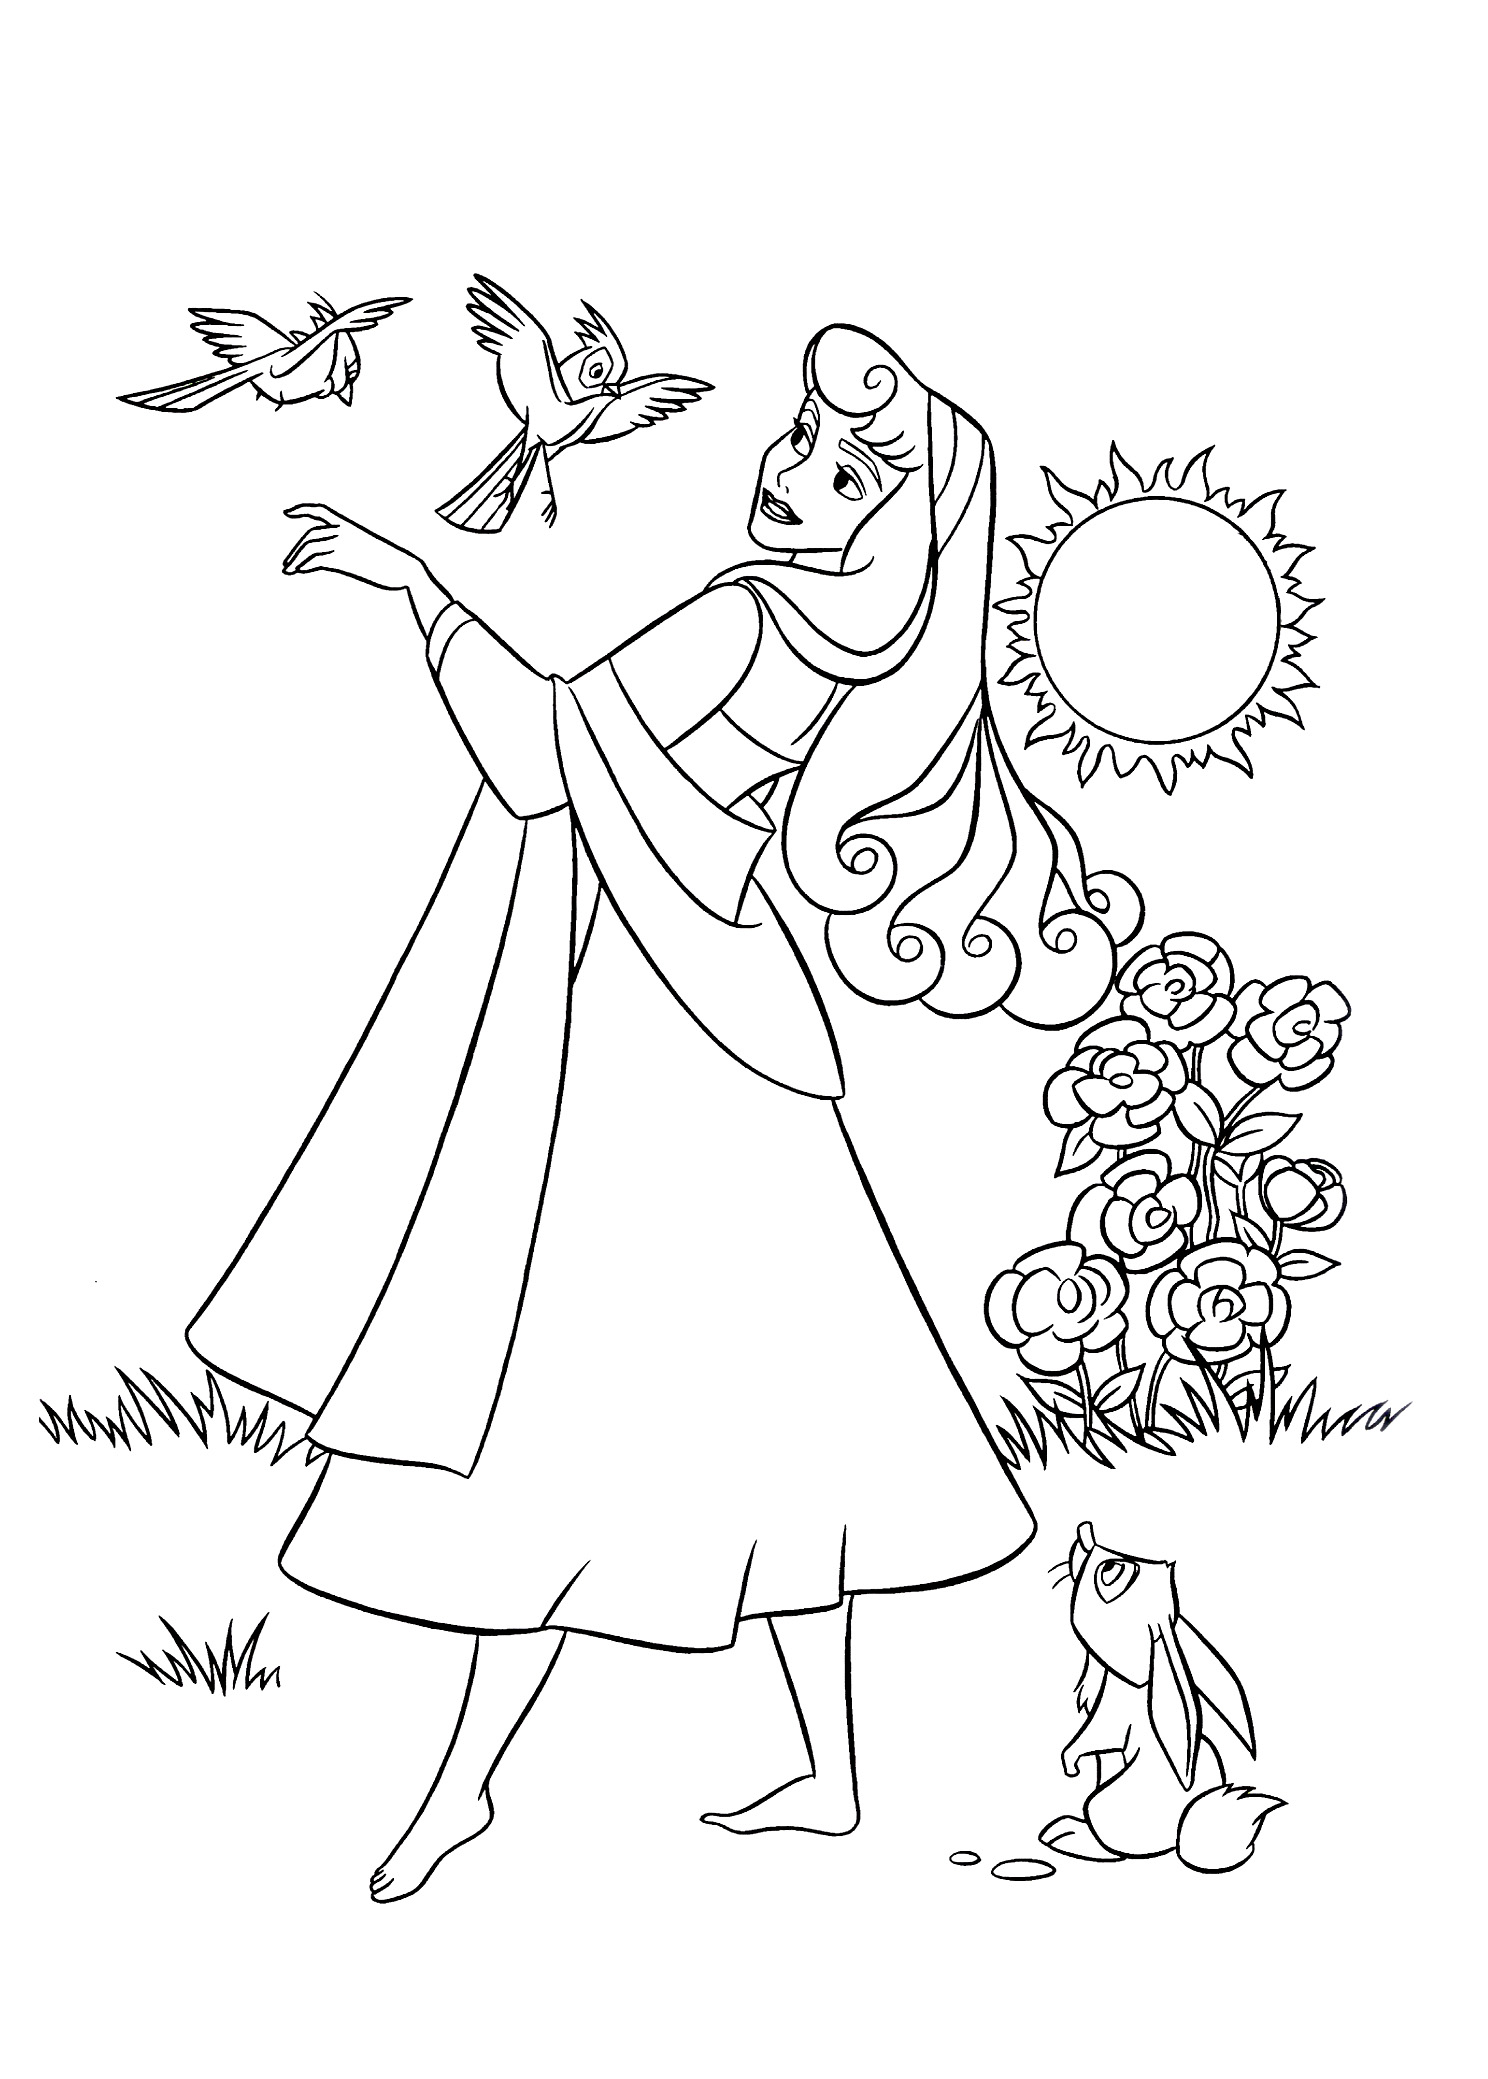 Sleeping Beauty To Download For Free Sleeping Beauty Kids Coloring